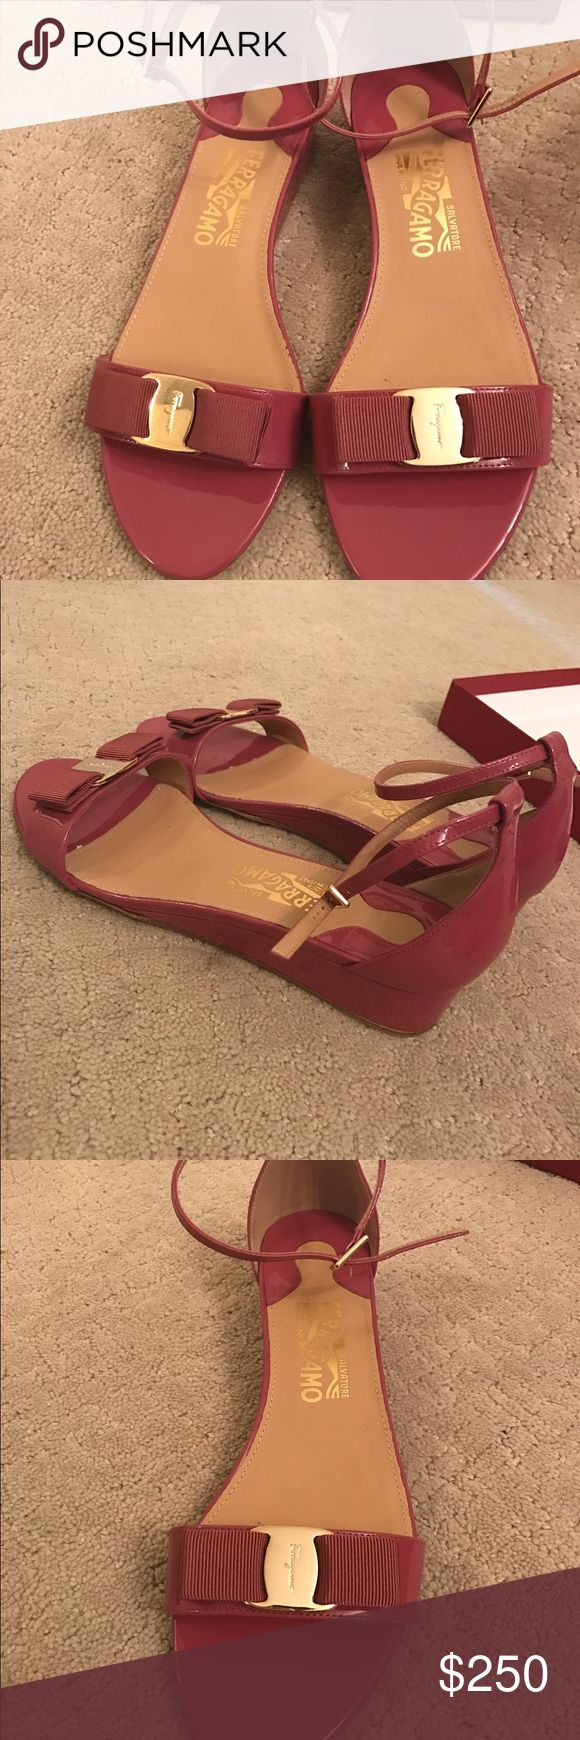 Salvatore Ferragamo brand new sandals for sale Beautiful never worn sandals in size 9. They are brand new!!! Salvatore Ferragamo Shoes Sandals